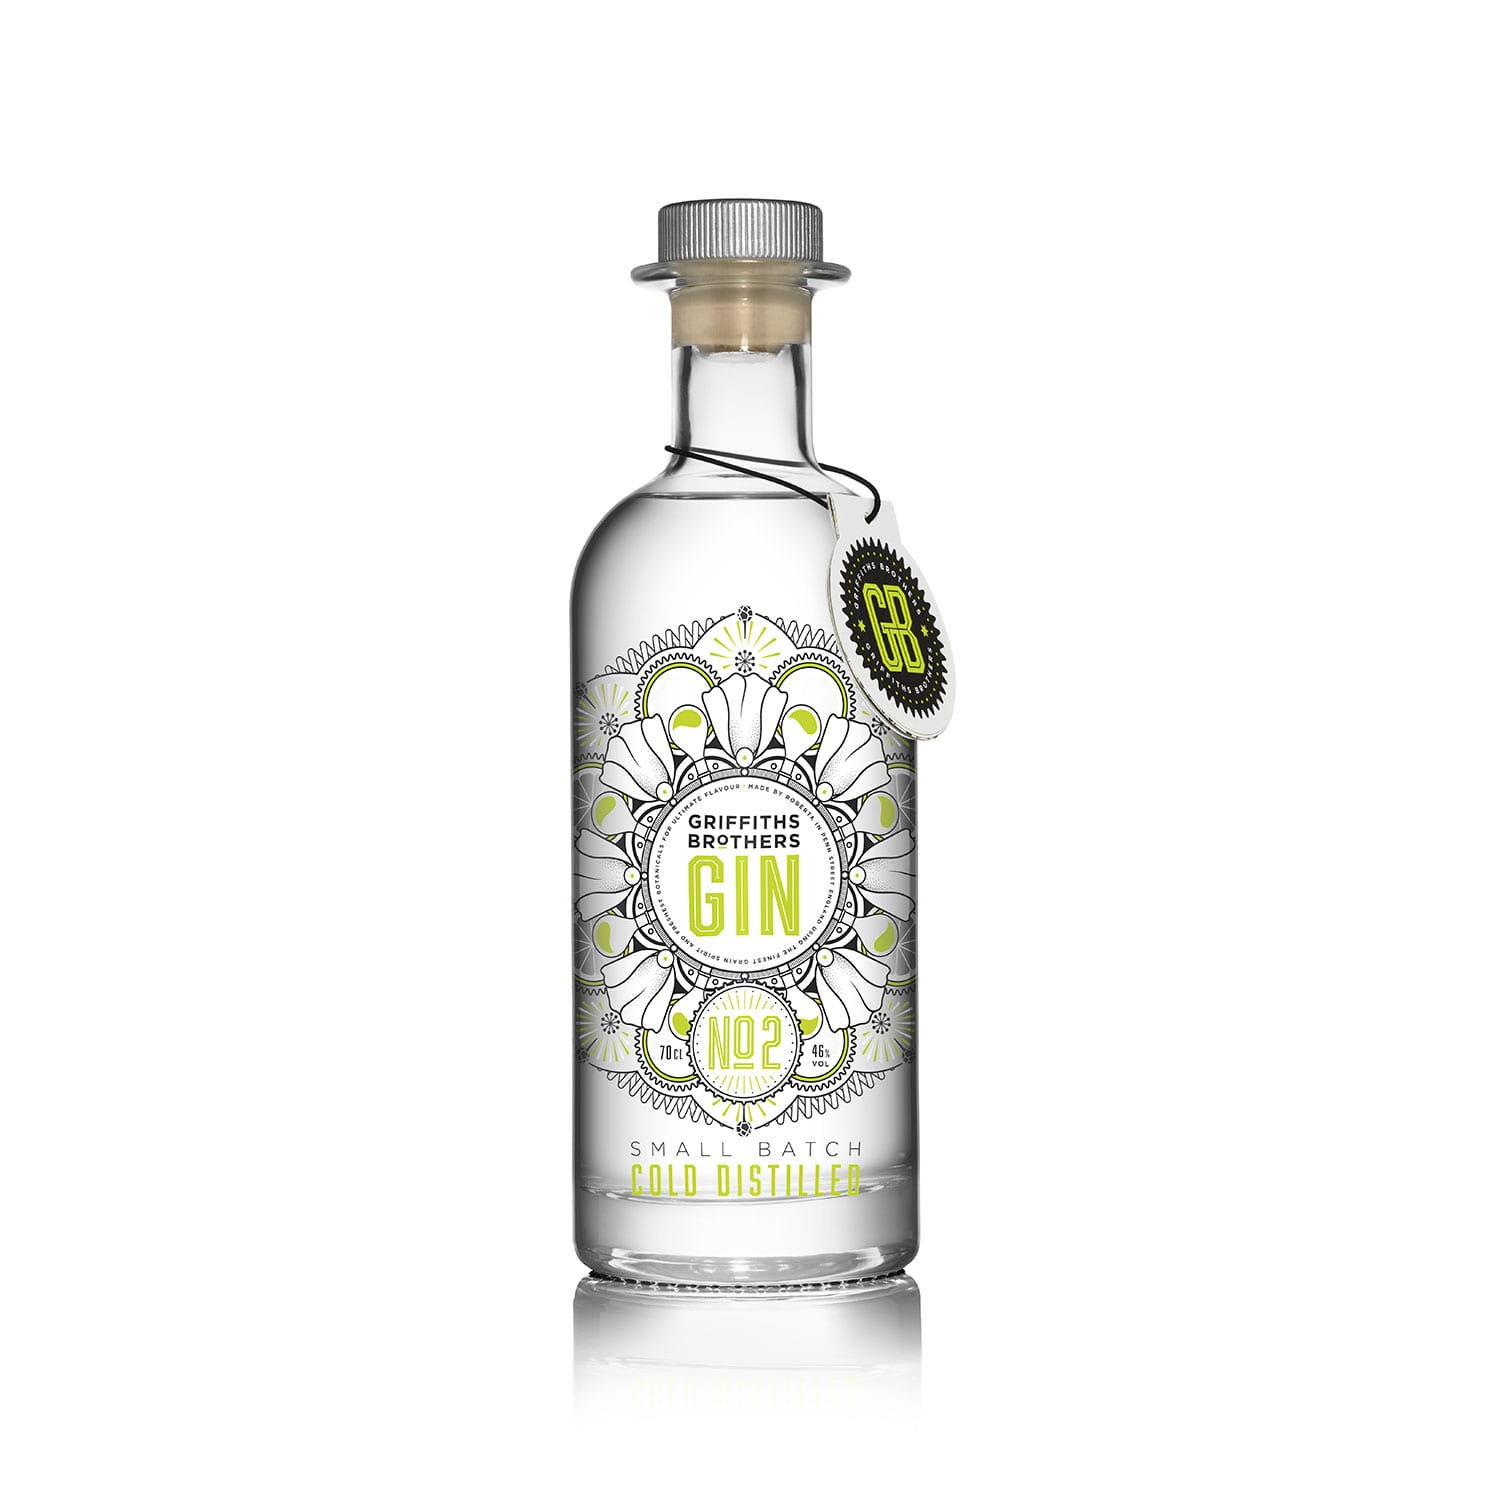 Griffiths Brothers No.2 gin